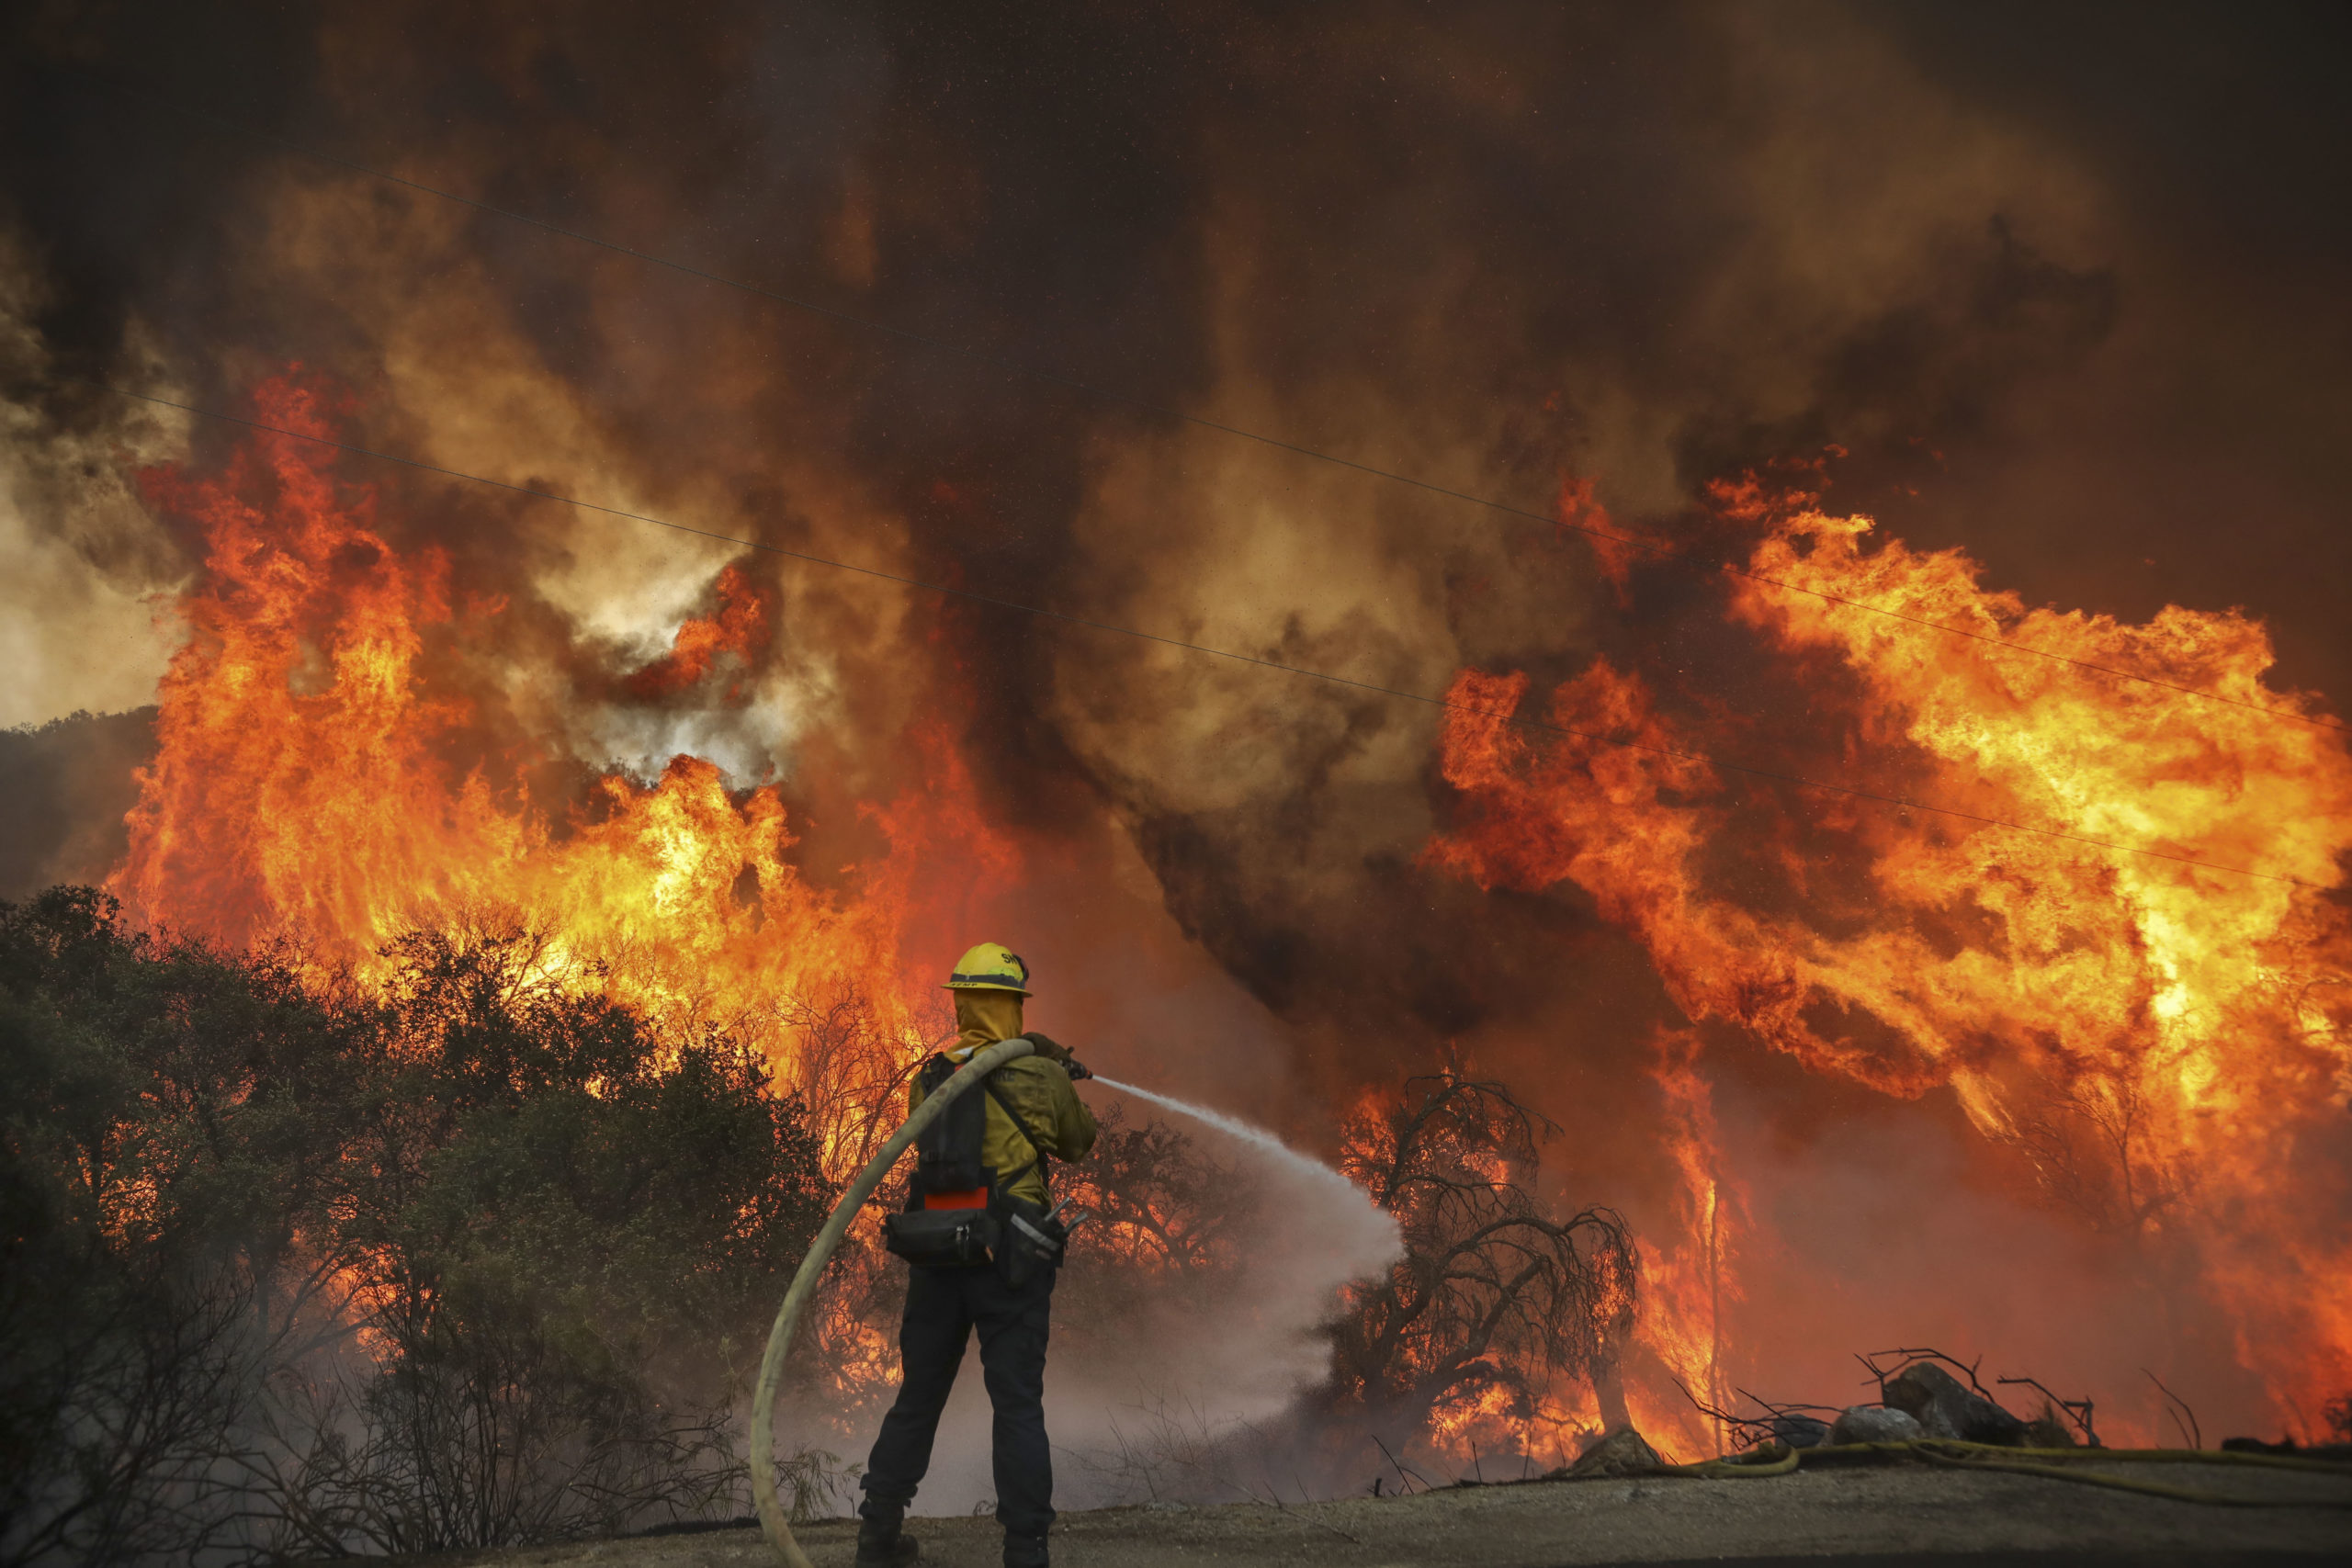 San Miguel County Firefighters battle a brush fire along Japatul Road during the Valley Fire in Jamul, California on September 6, 2020 - The Valley Fire in the Japatul Valley burned 4,000 acres overnight with no containment and 10 structures destroyed, Cal Fire San Diego said. (Photo by SANDY HUFFAKER/AFP via Getty Images)